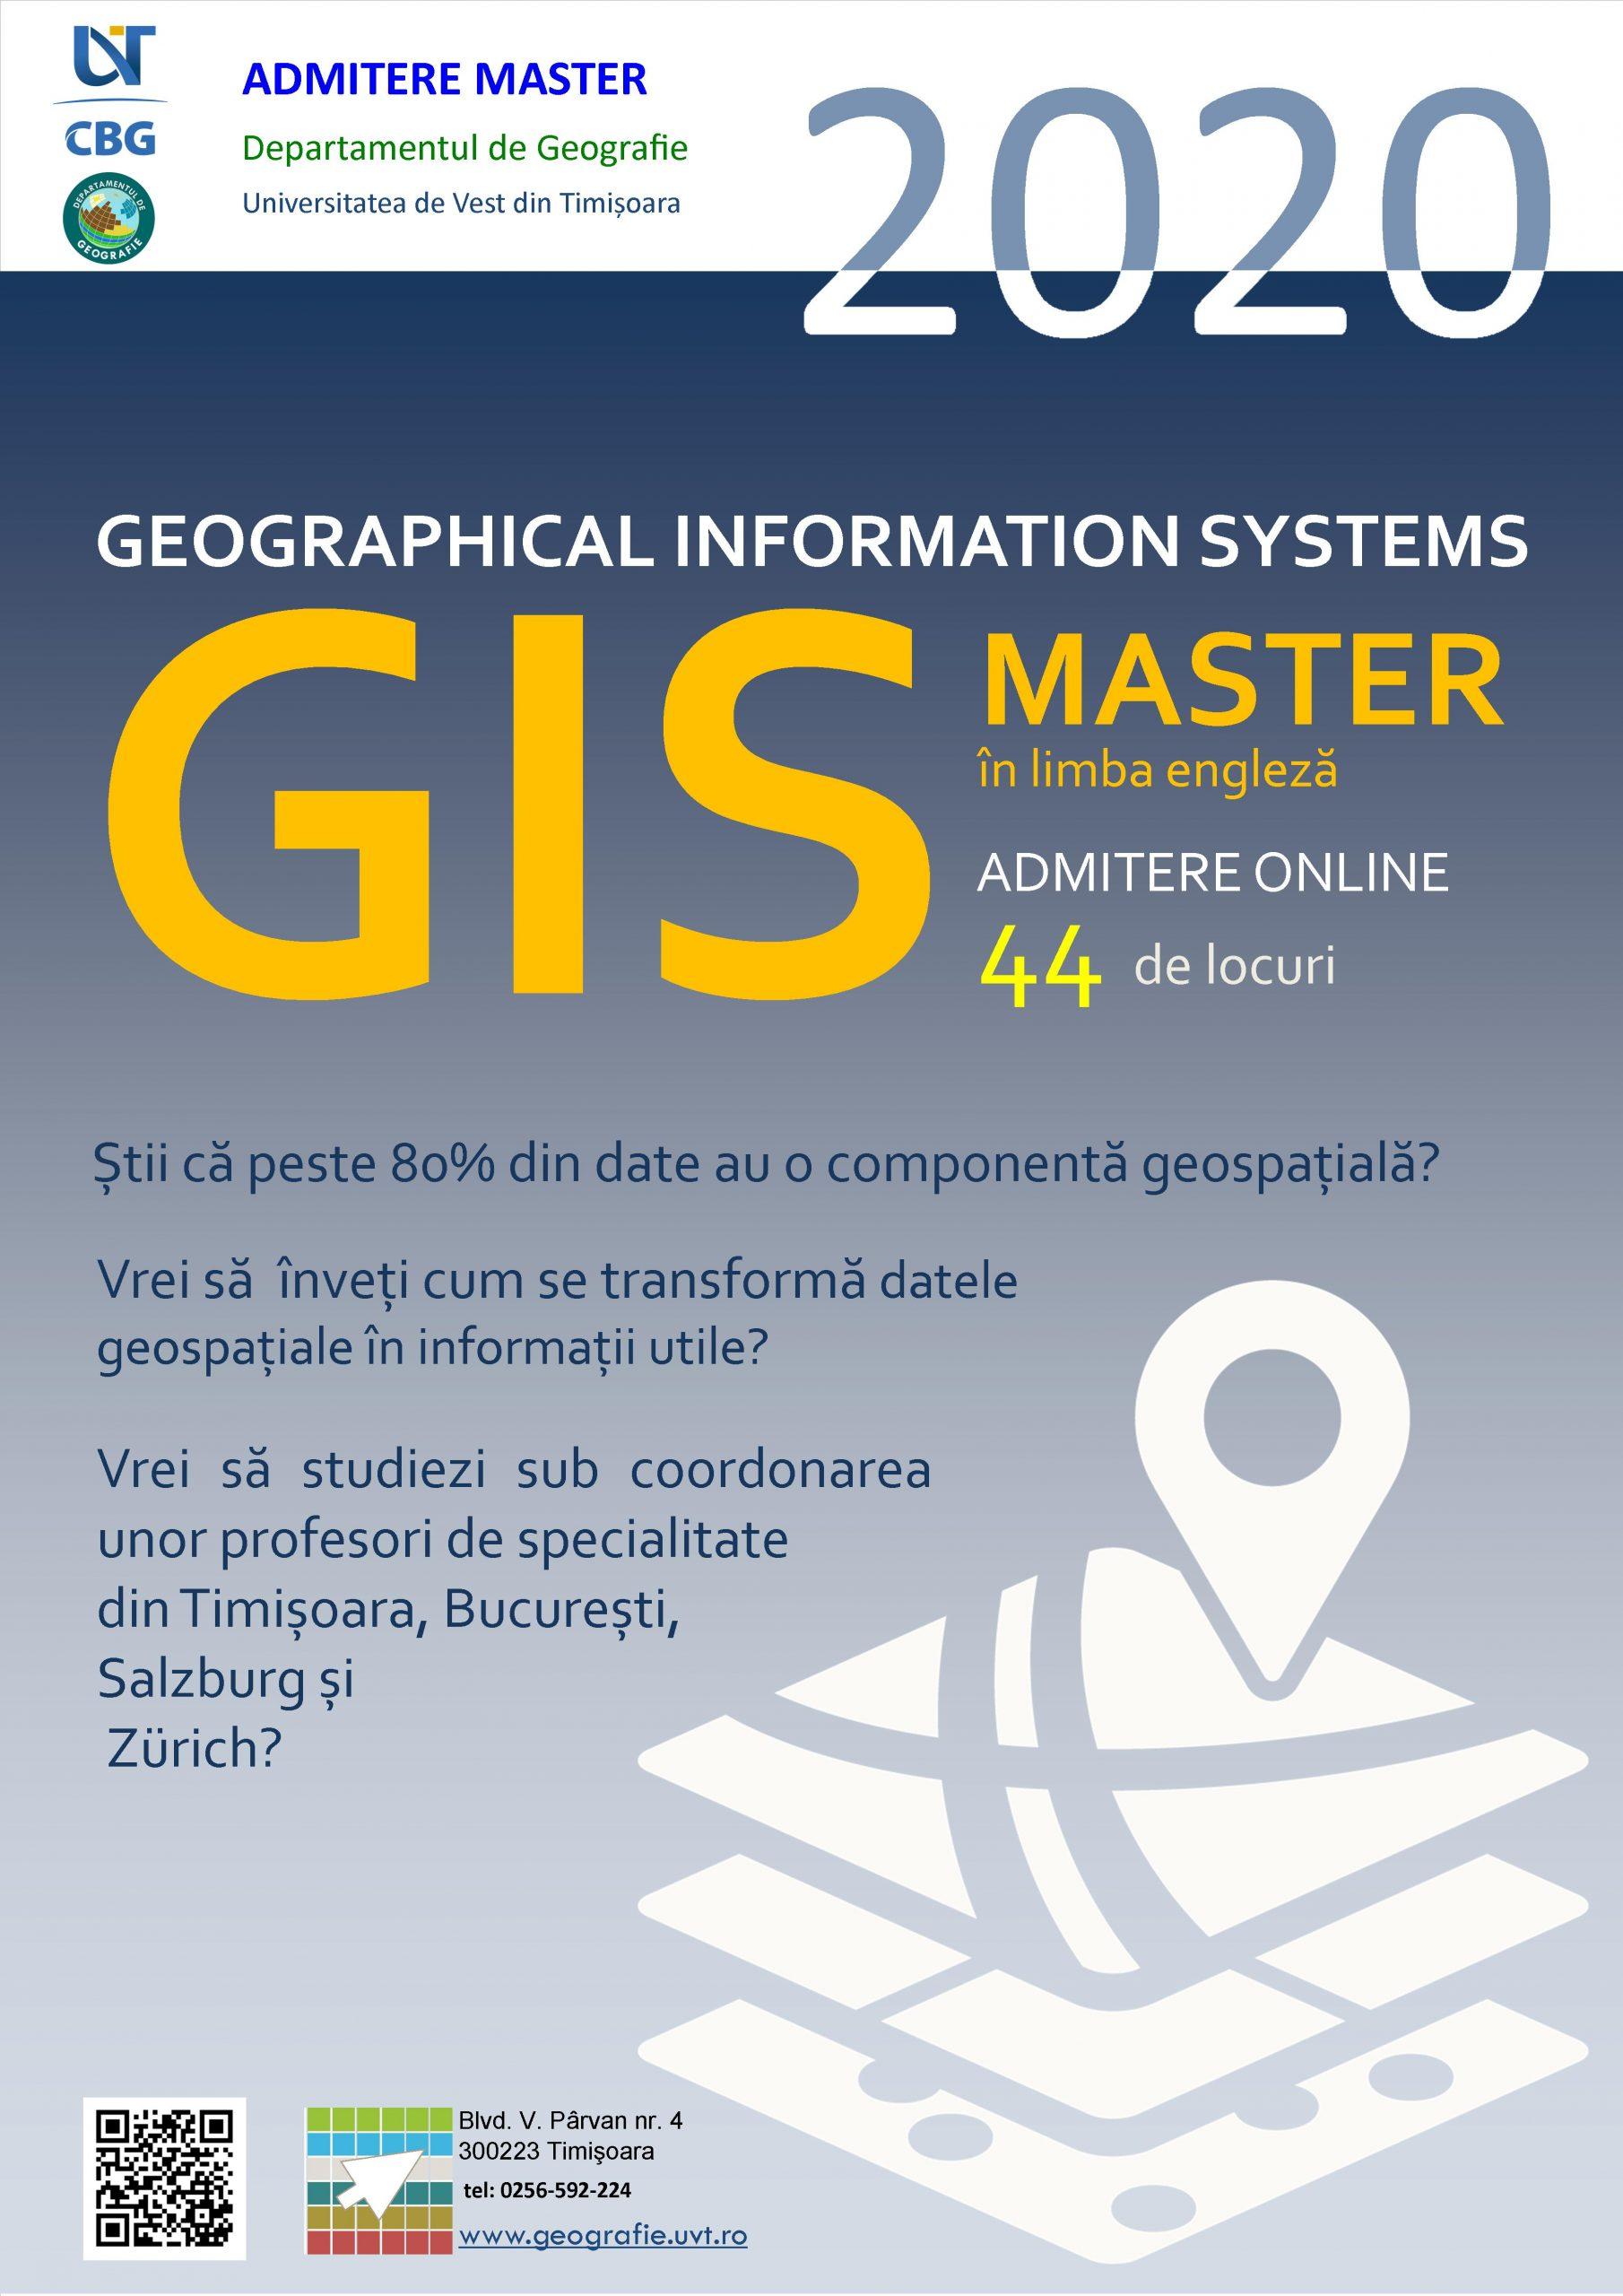 afis_promovare_GIS2_2020_SEPTEMBRIE-scaled